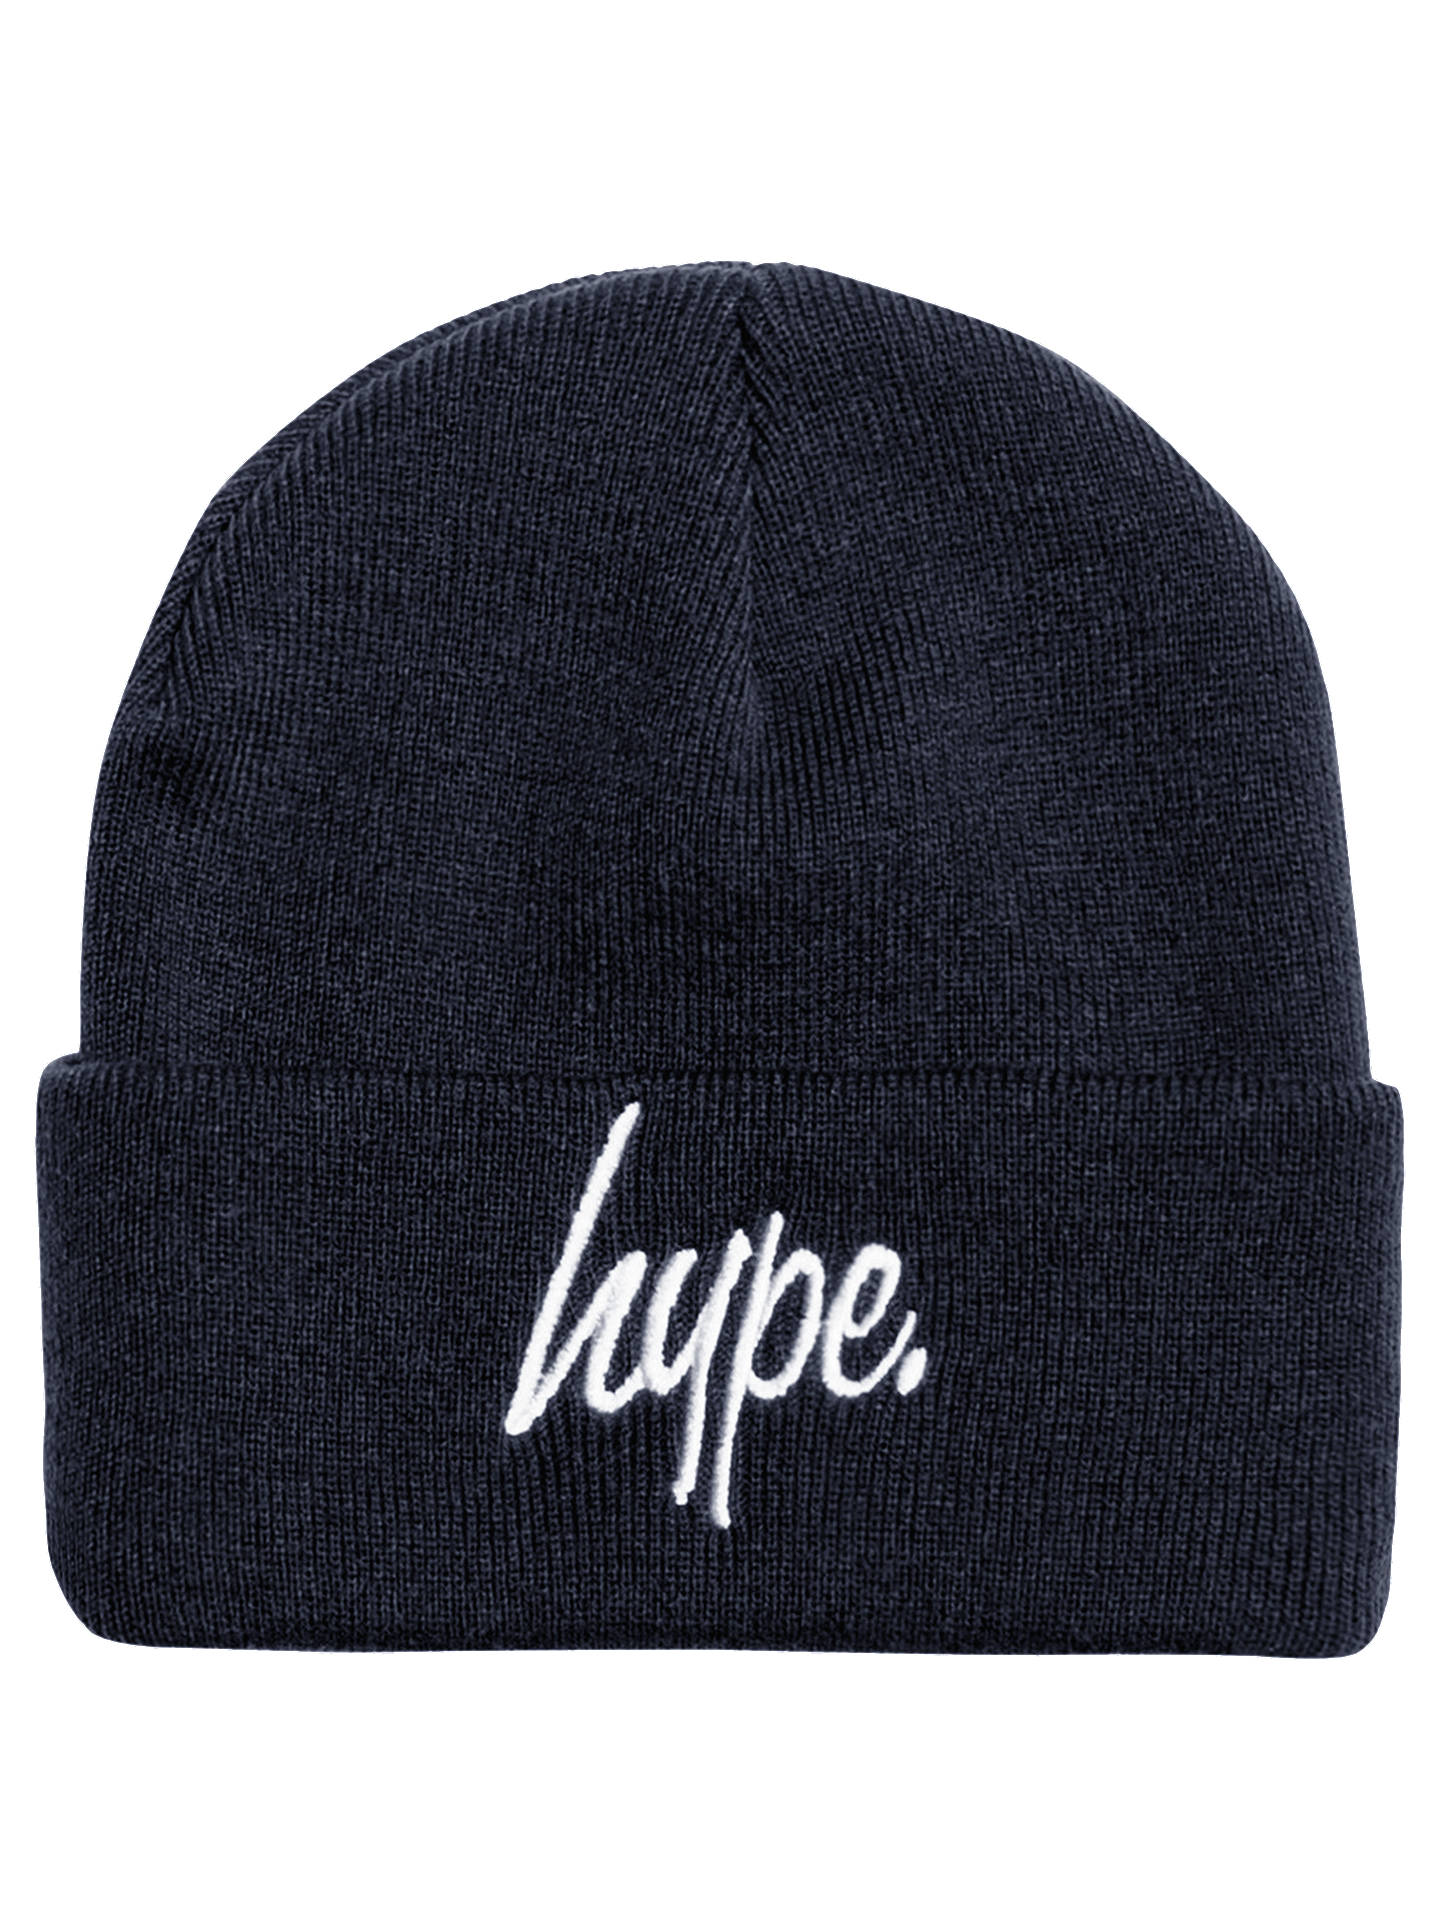 b7c66f8782af6 Buy Hype Boys' Beanie Hat, Navy Online at johnlewis. ...